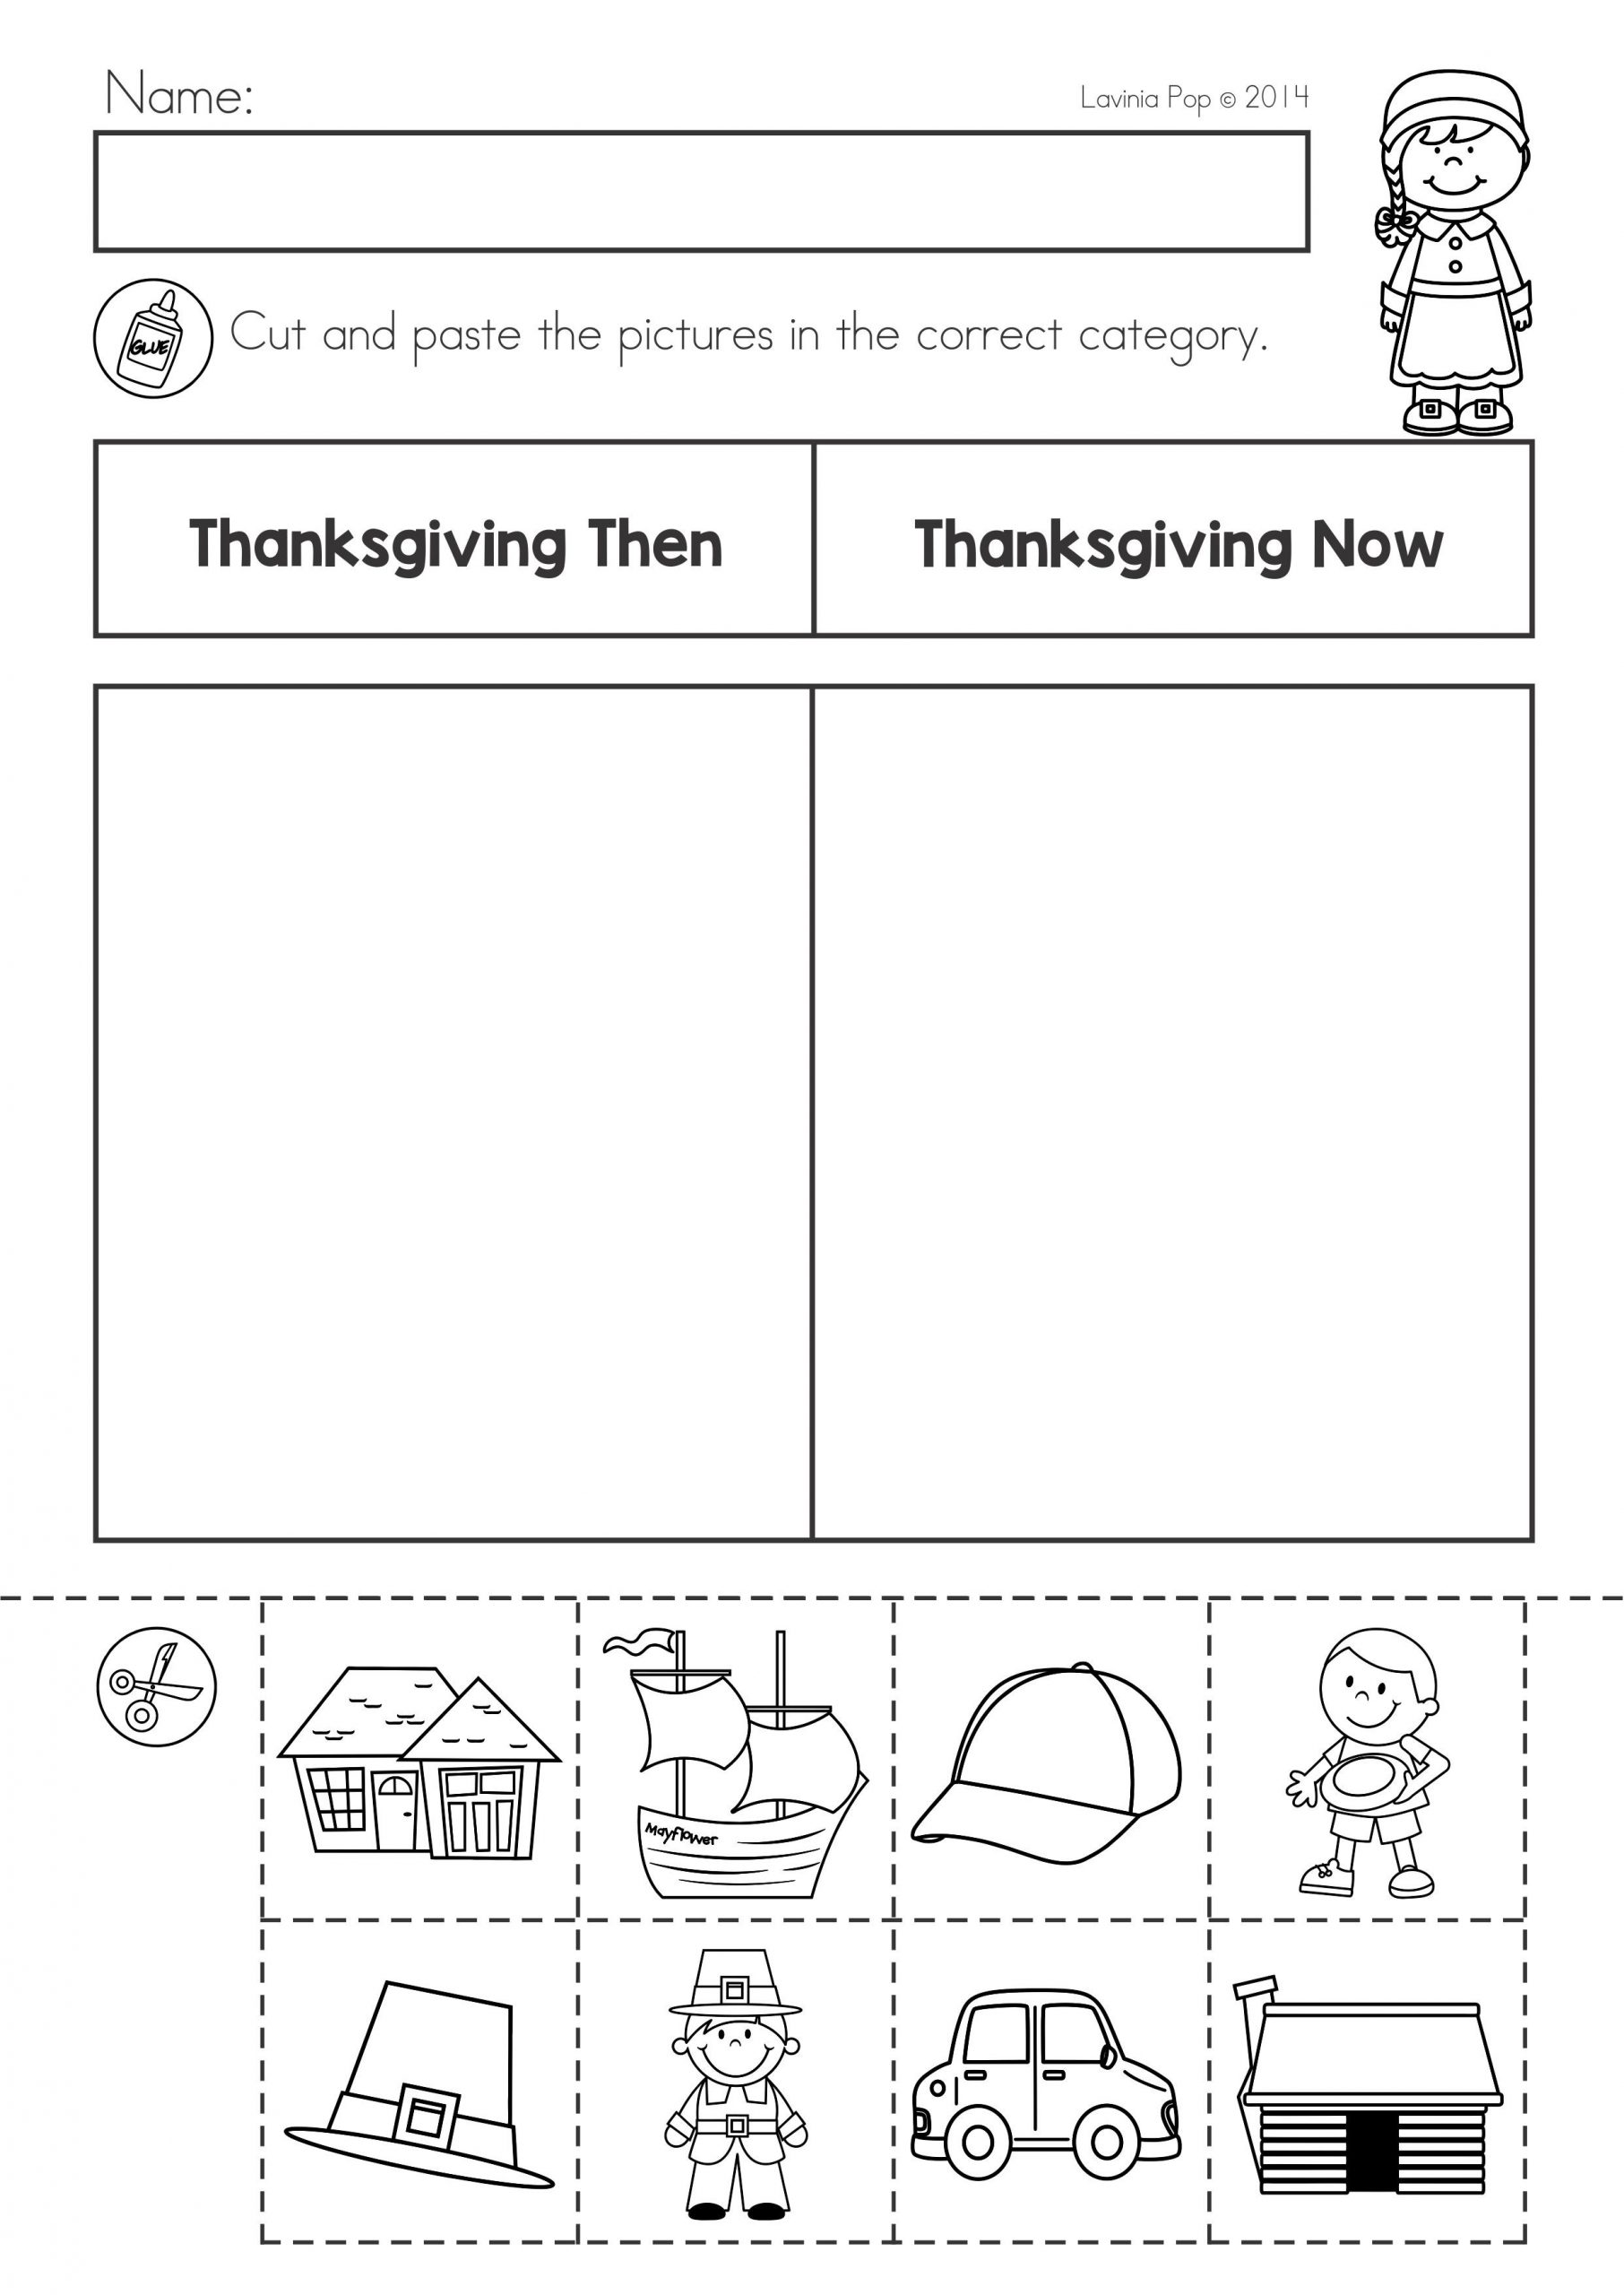 Thanksgiving Math Worksheets Middle School Thanksgiving Math & Literacy Worksheets and Activities